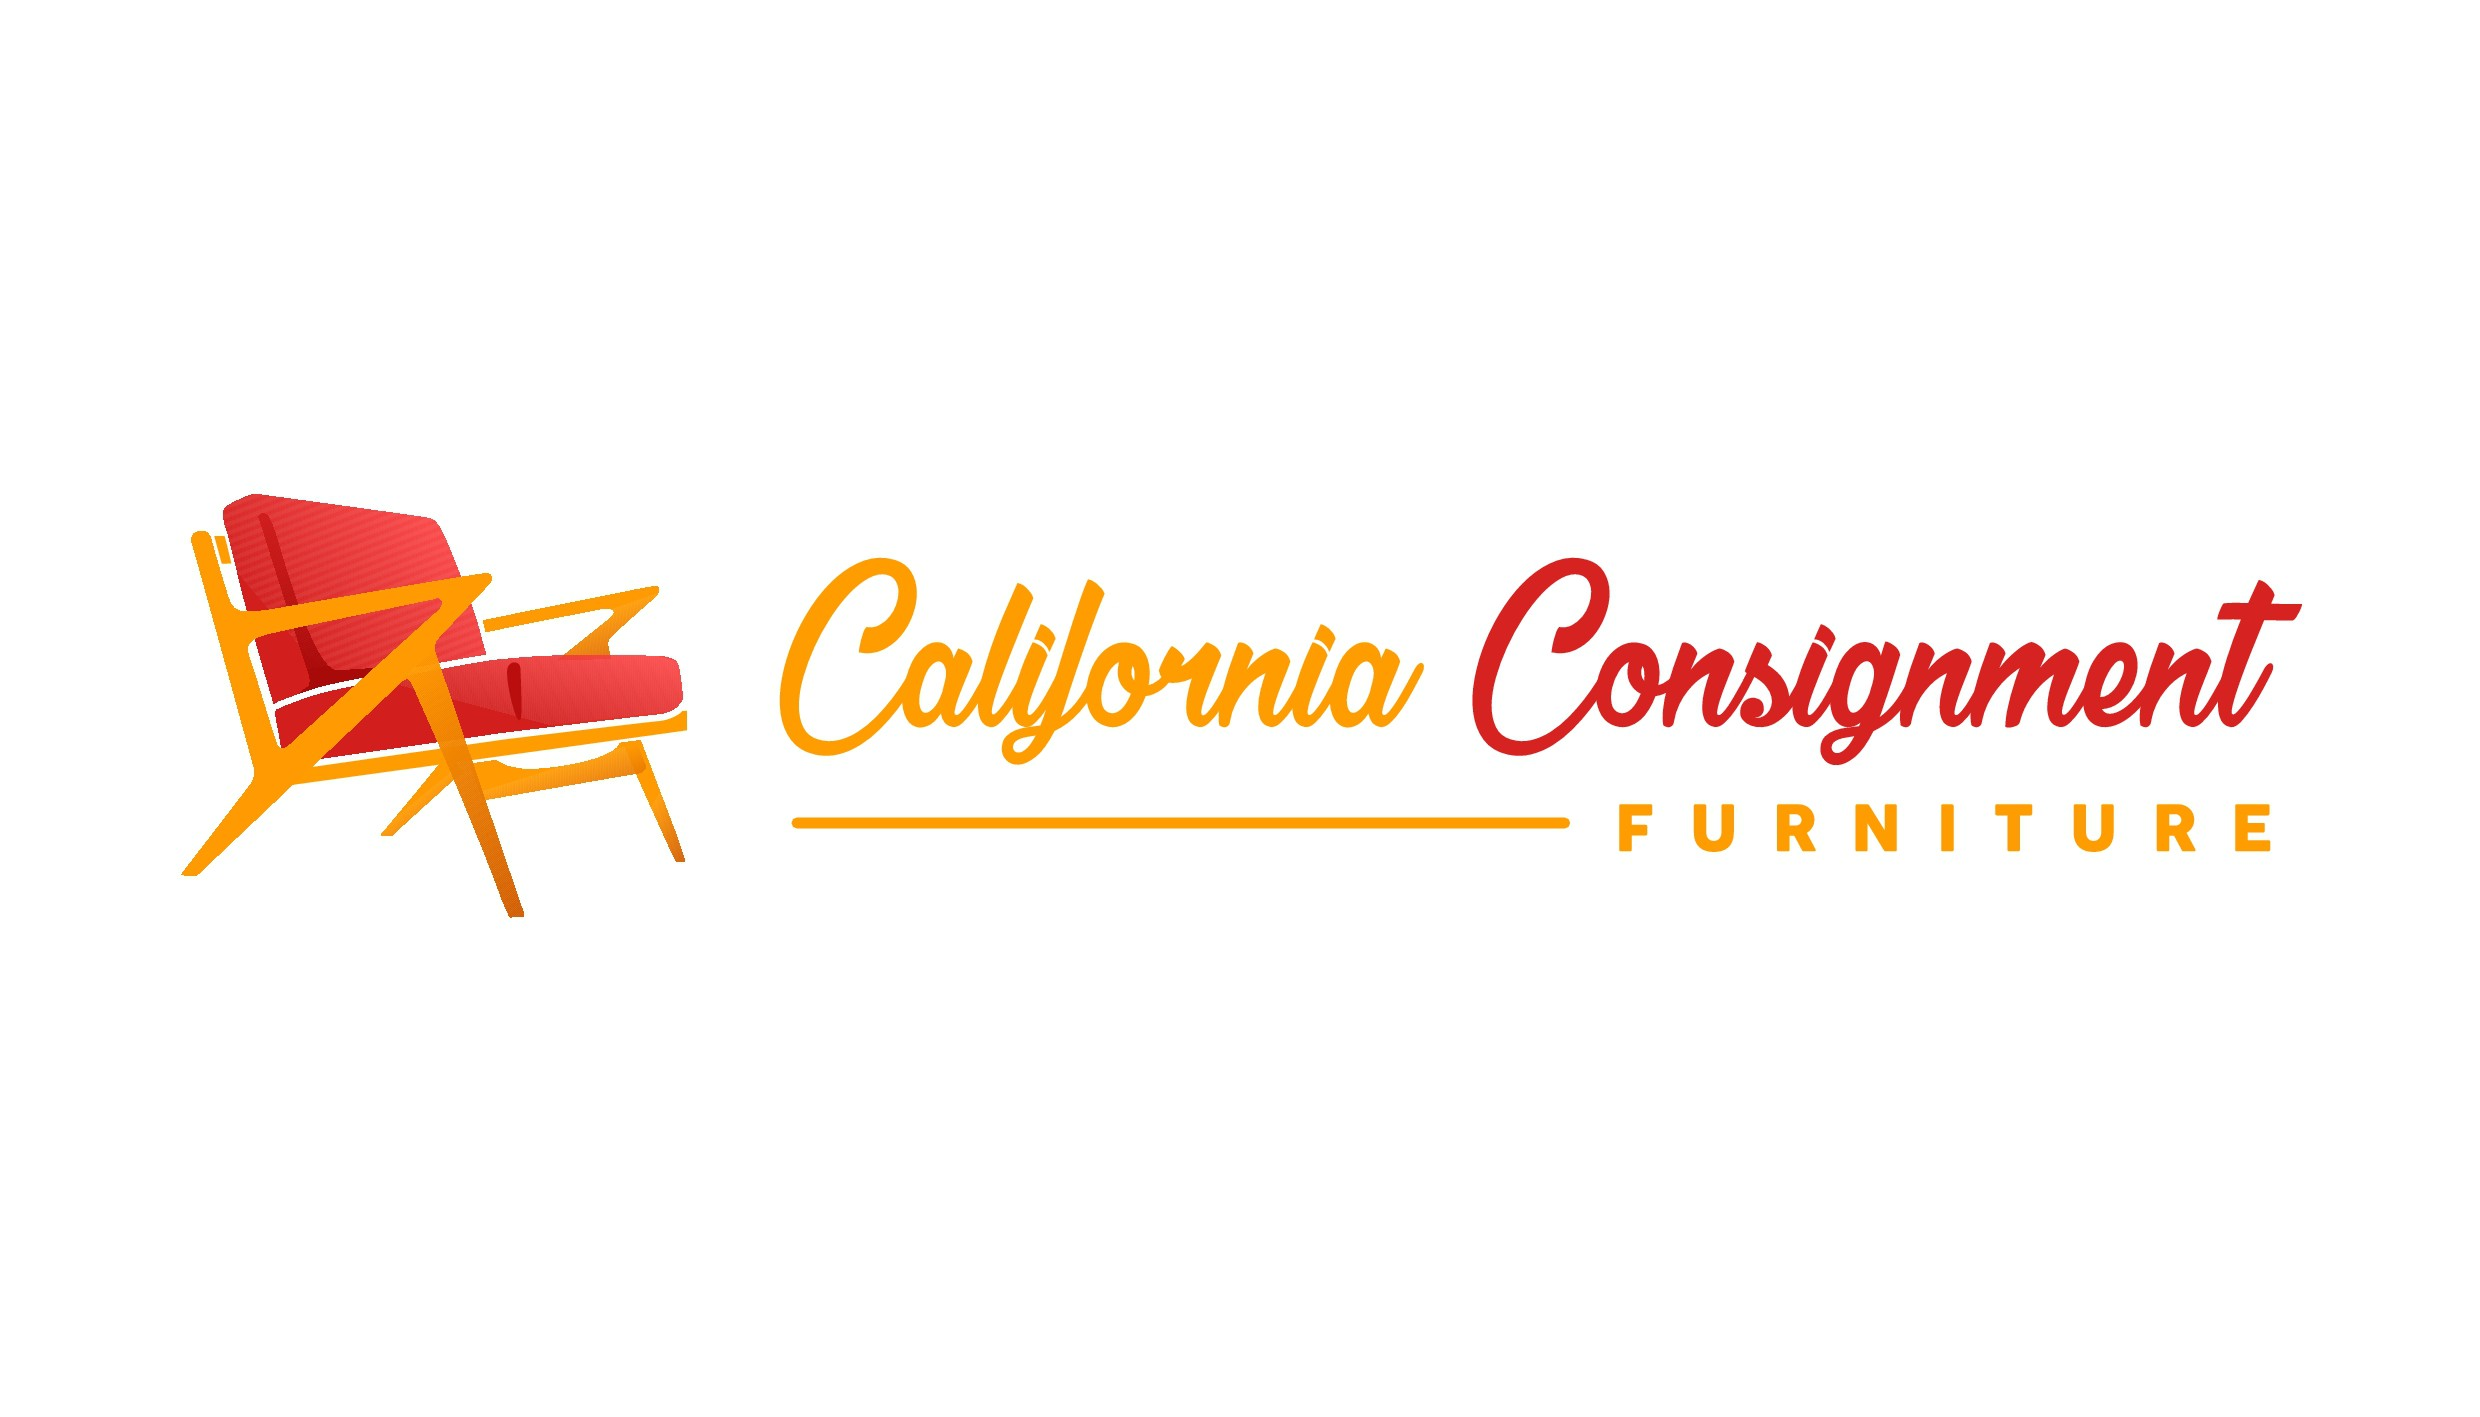 Create the logo for a fresh, professional furniture consignment store in California